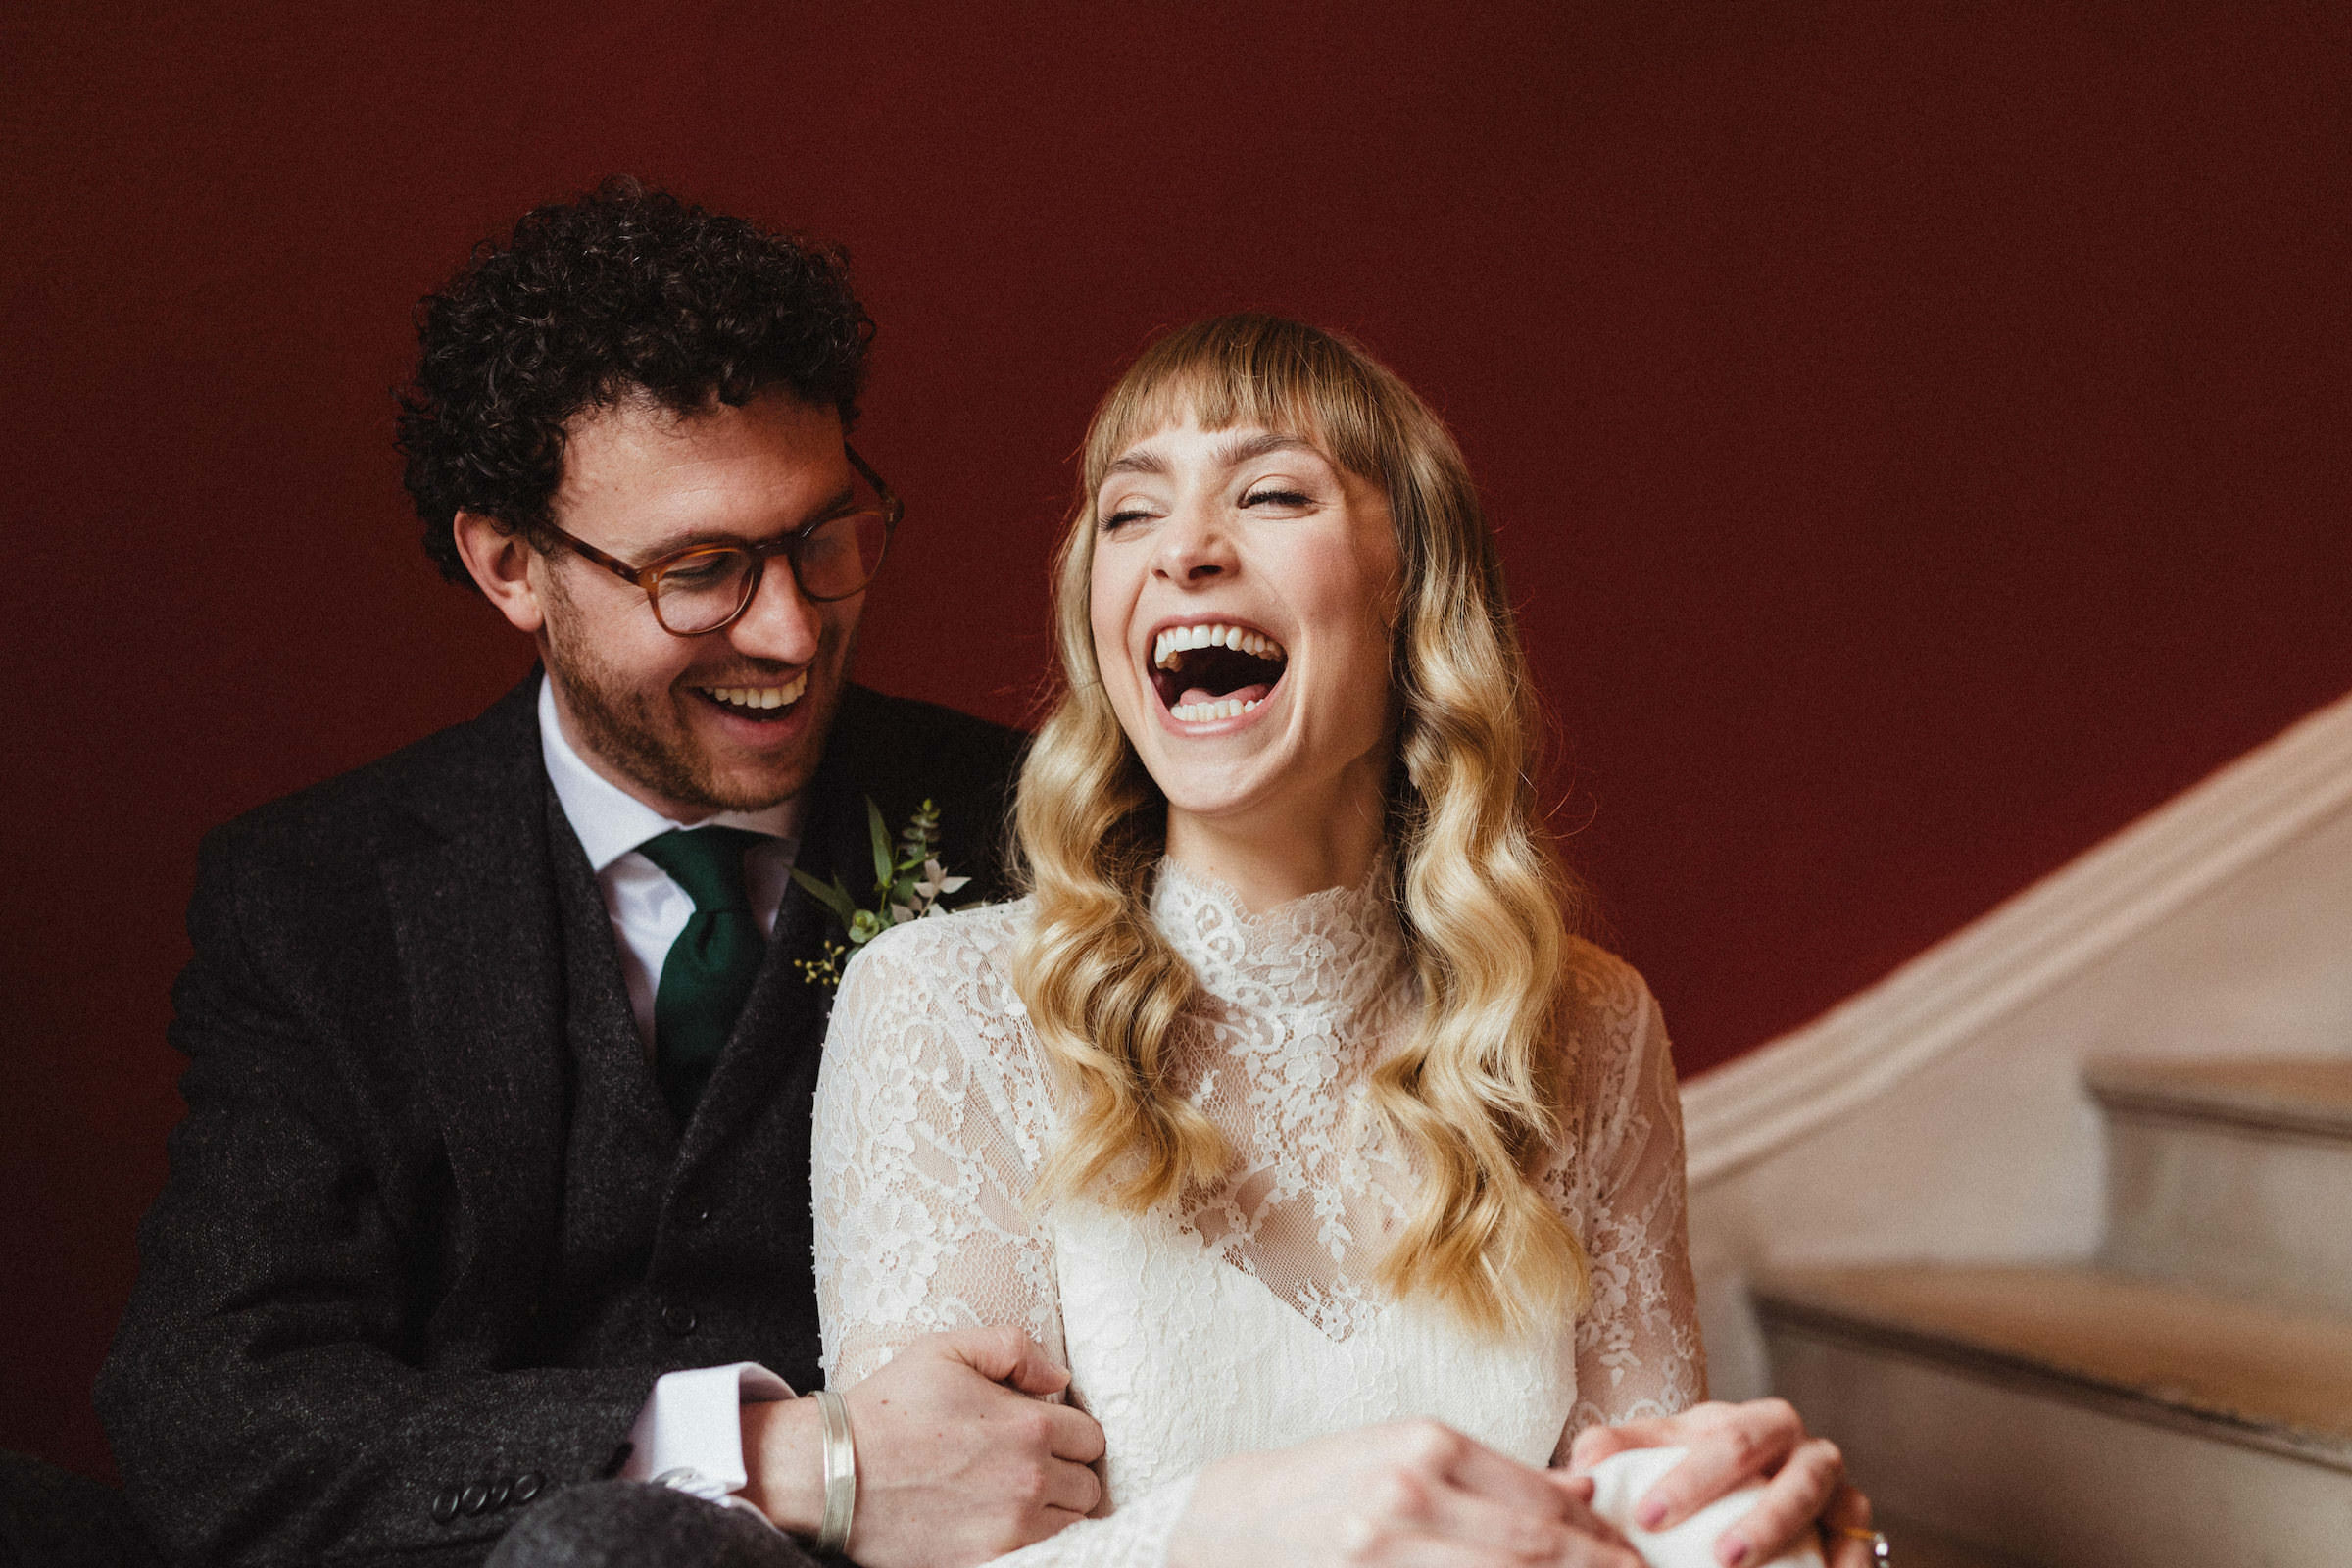 Bride in vintage lace dress and groom laughing - photo by White Cat Studio